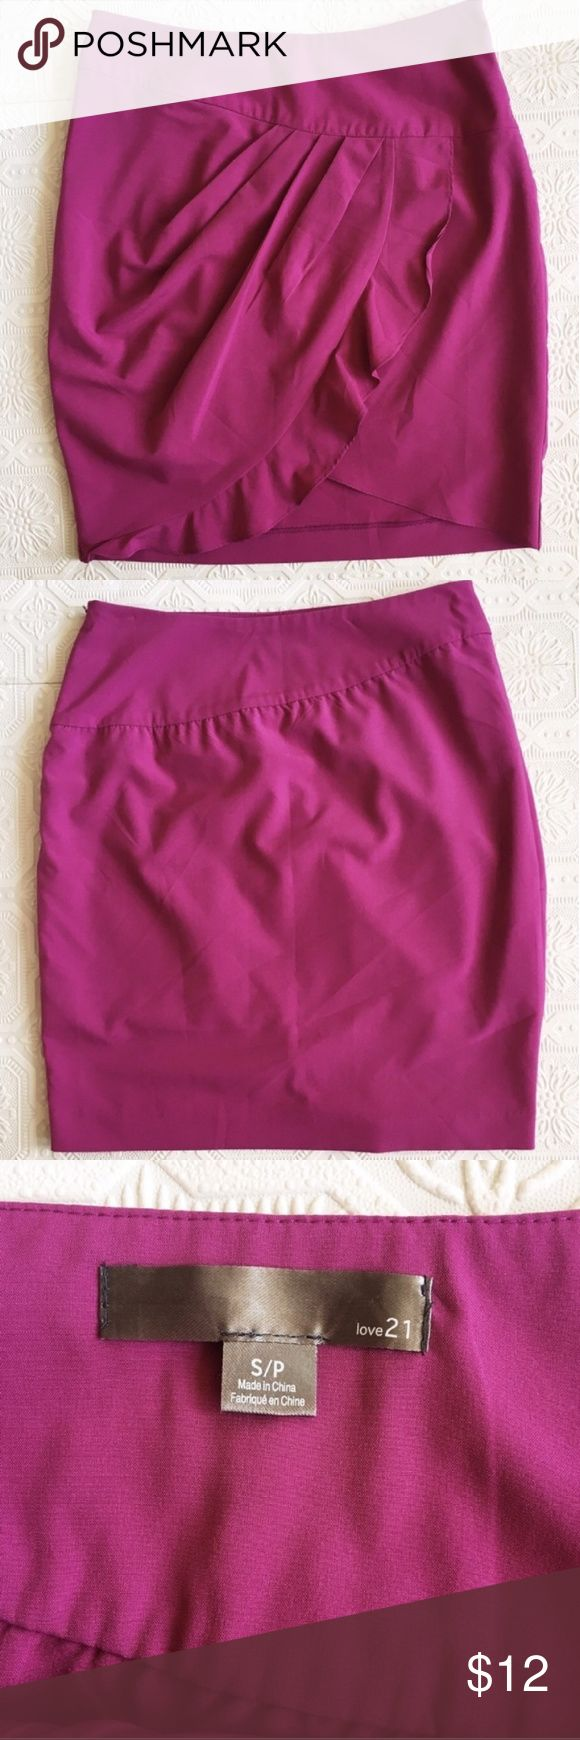 Magenta fuschia tulip skirt Tulip skirt with ruffled wrap. Zipper and hook closure on side. Perfect condition. Tag says size small but this  seems to be a medium.. waist measures 14 inches across, hips 18 inches across, length 19.5 inches. Forever 21 Skirts